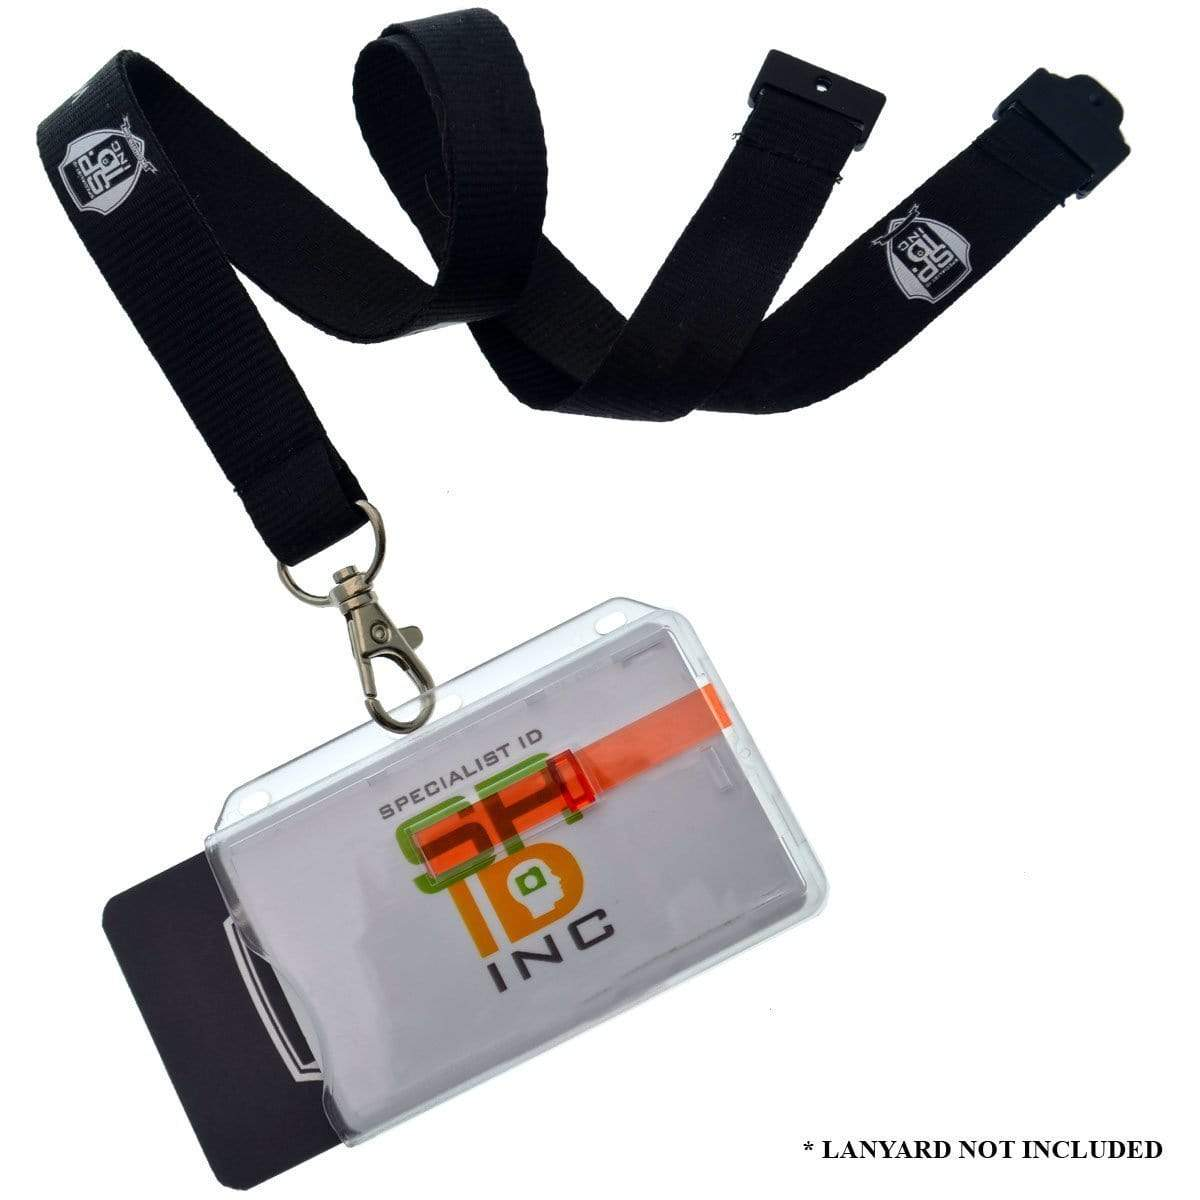 2 Card Badge Holder with Slide (P/N 1840-6400)